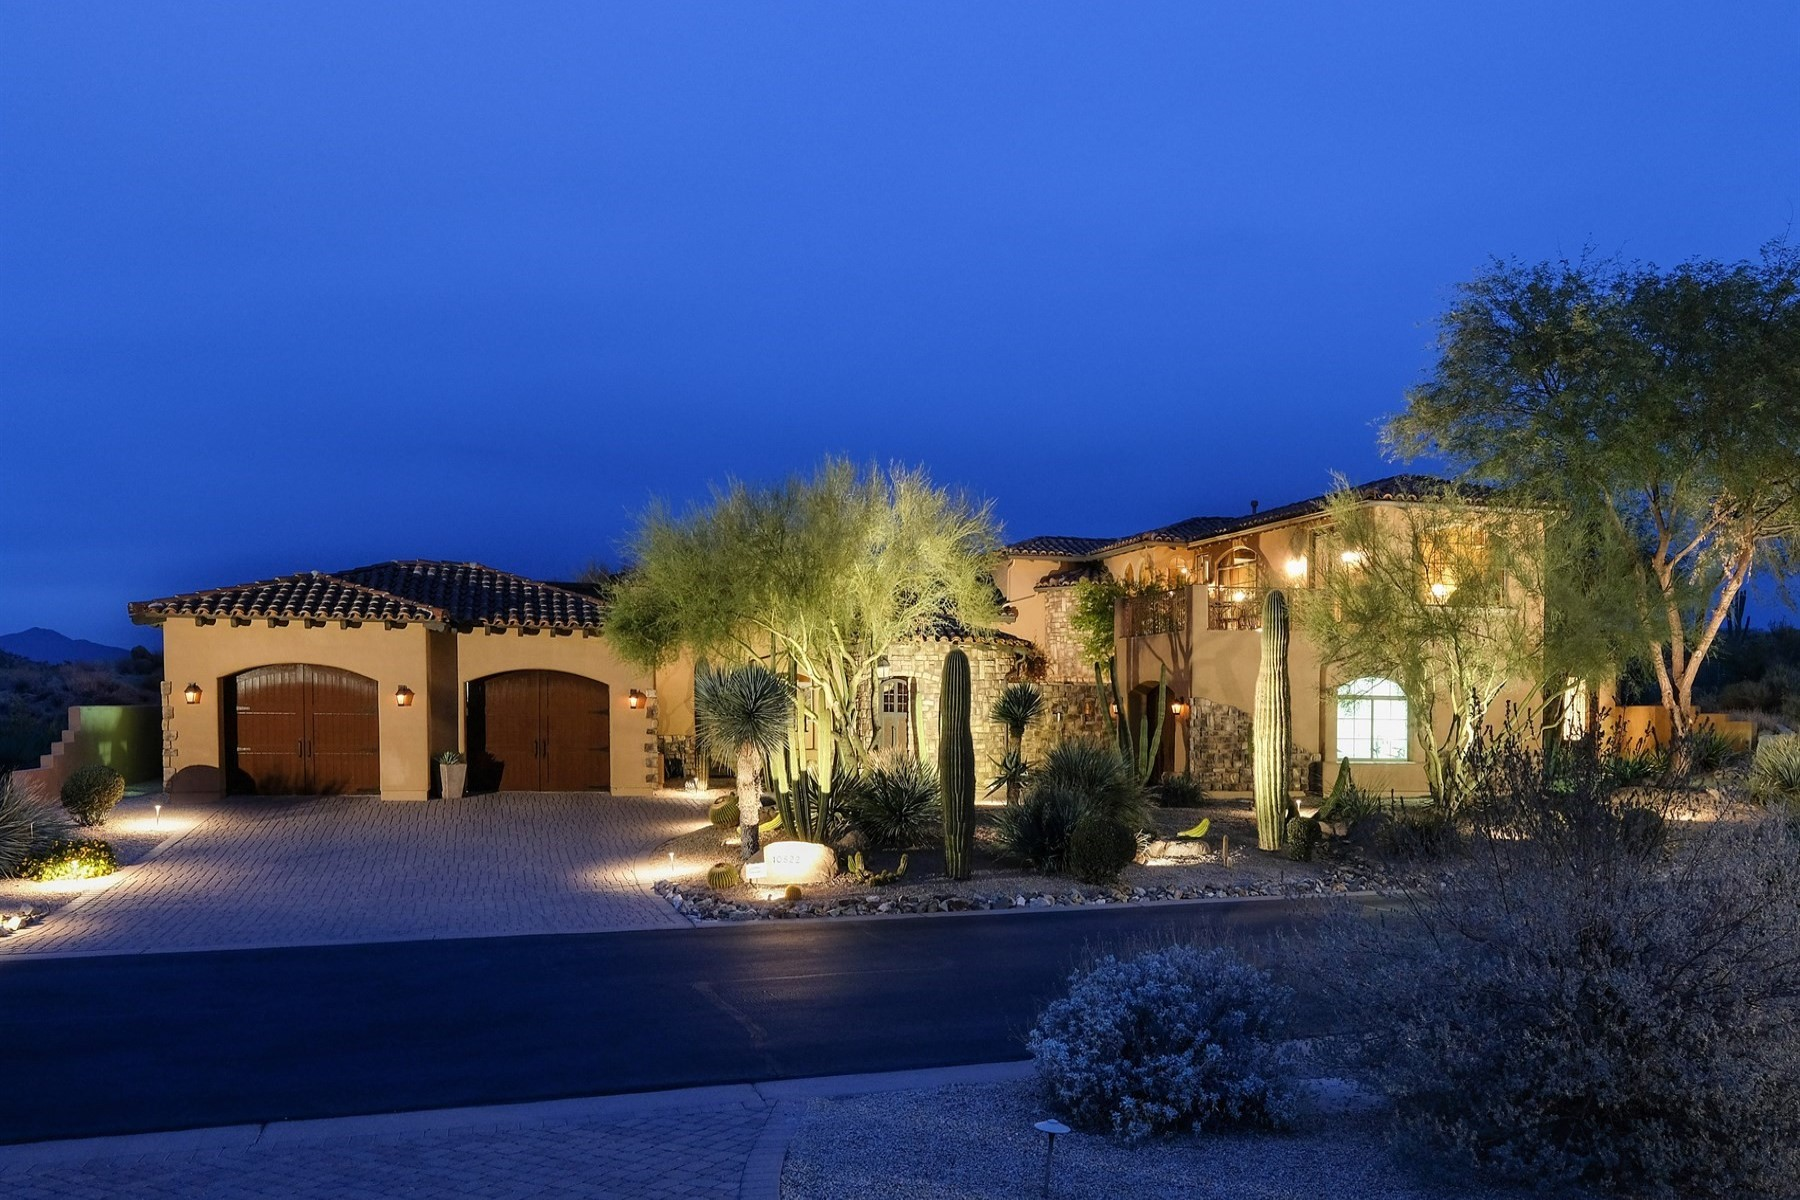 Single Family Home for Sale at Talus at Troon North 10822 E Troon North Dr, Scottsdale, Arizona, 85262 United States